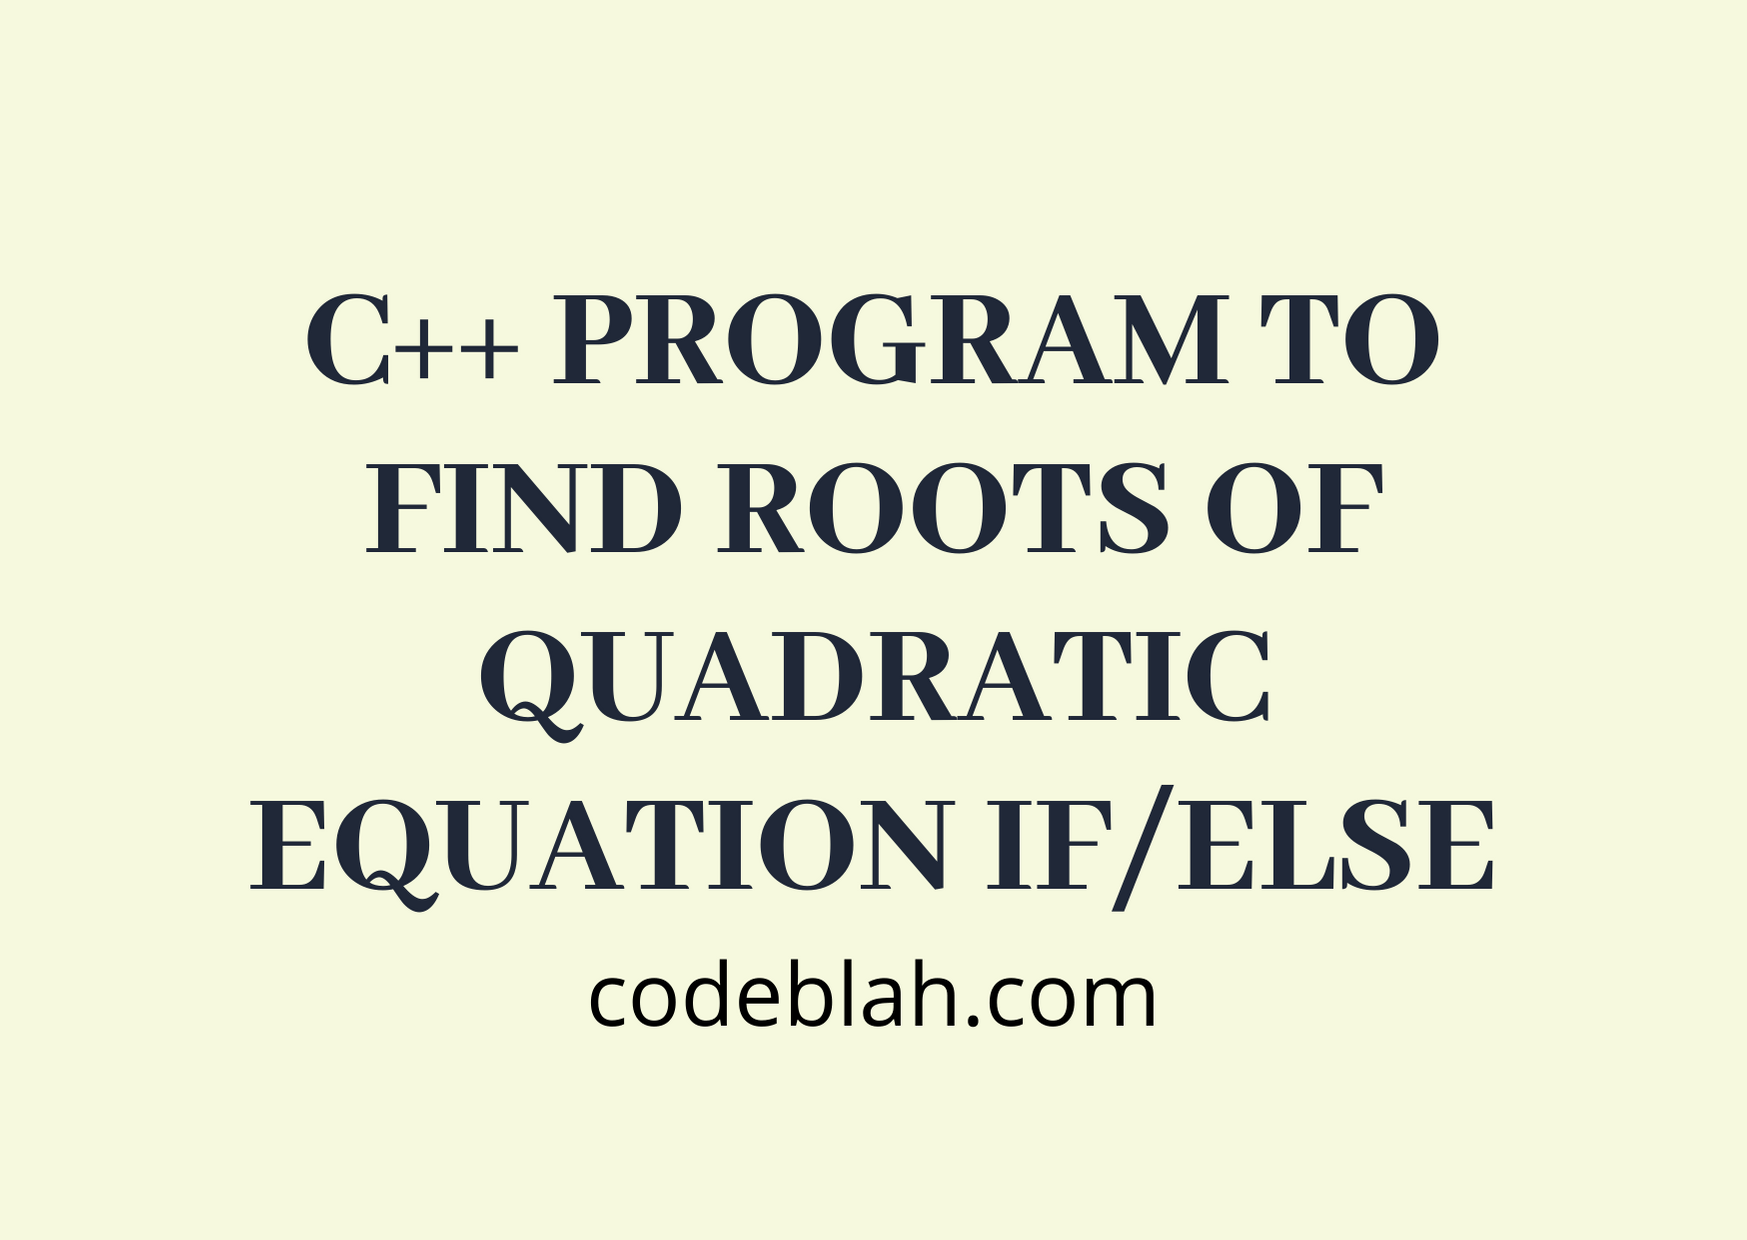 C++ Program to Find Roots of Quadratic Equation if/else